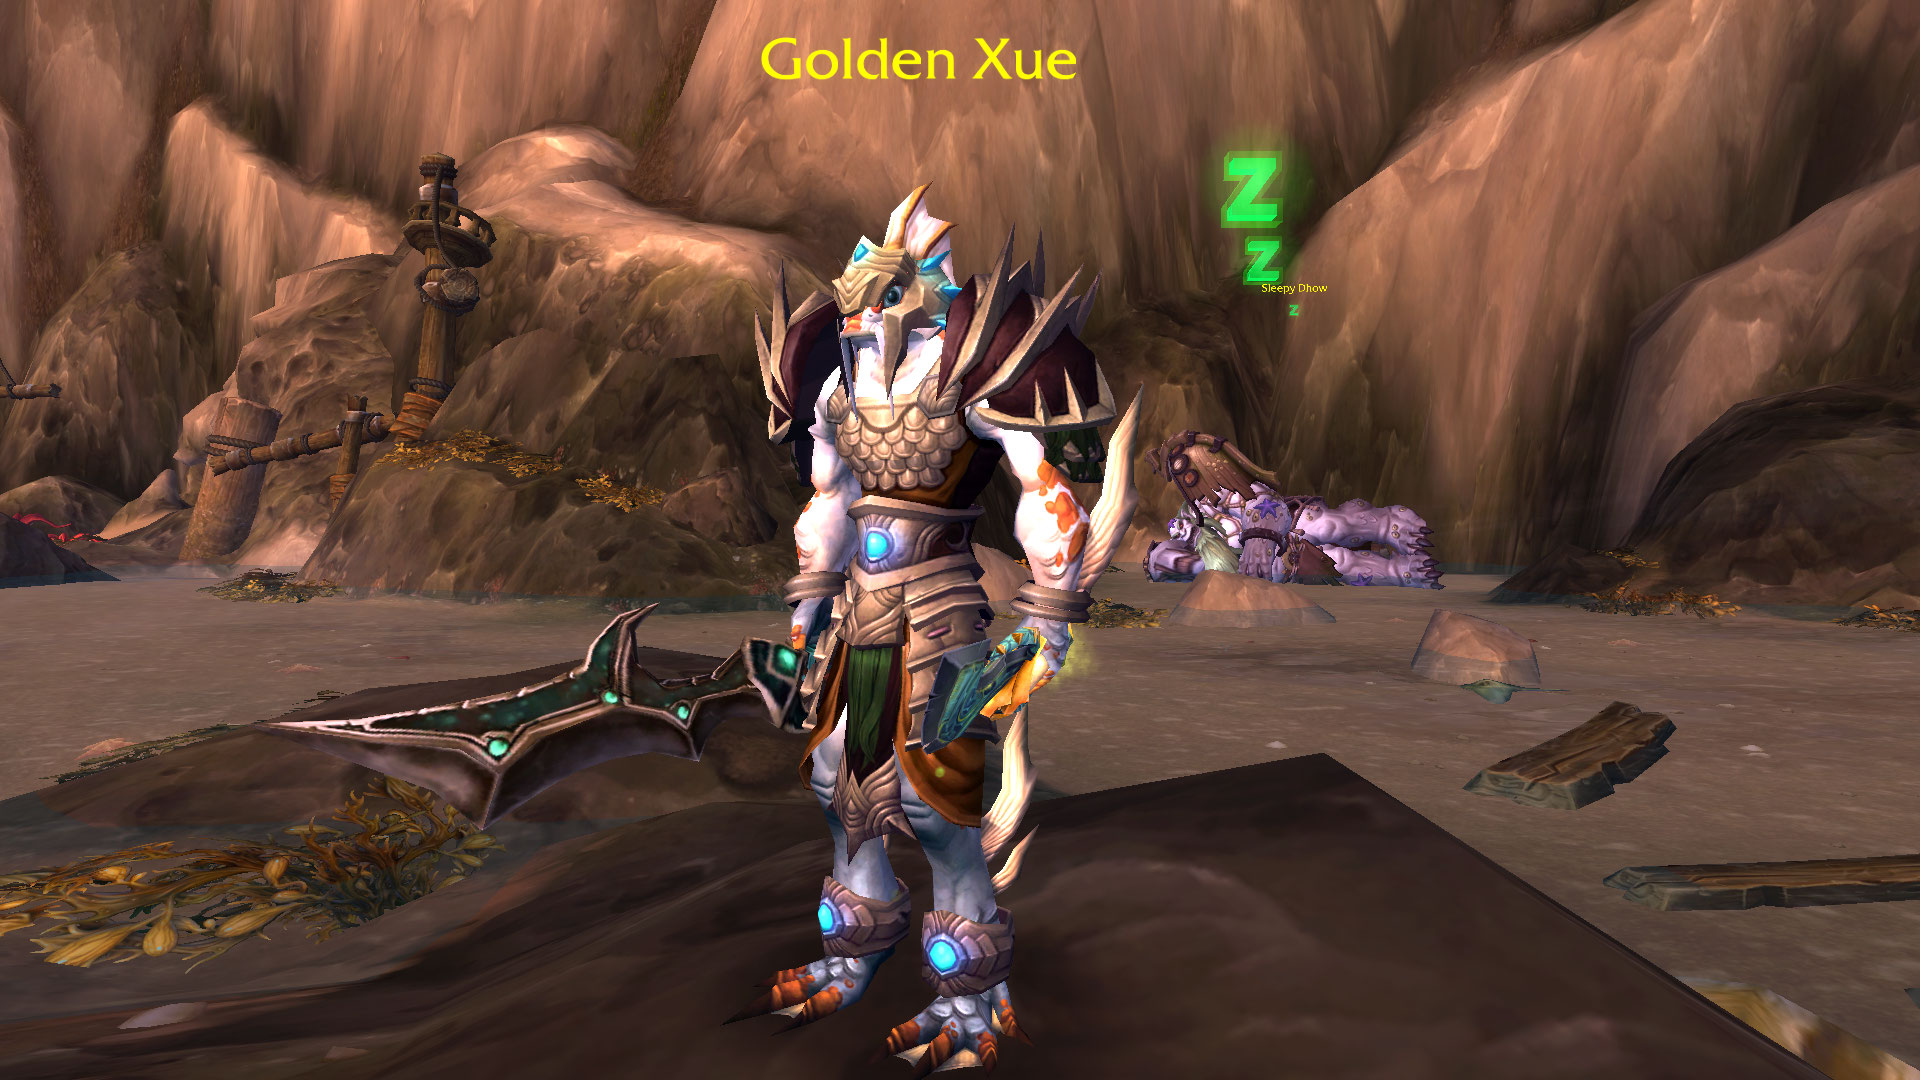 Golden Xue